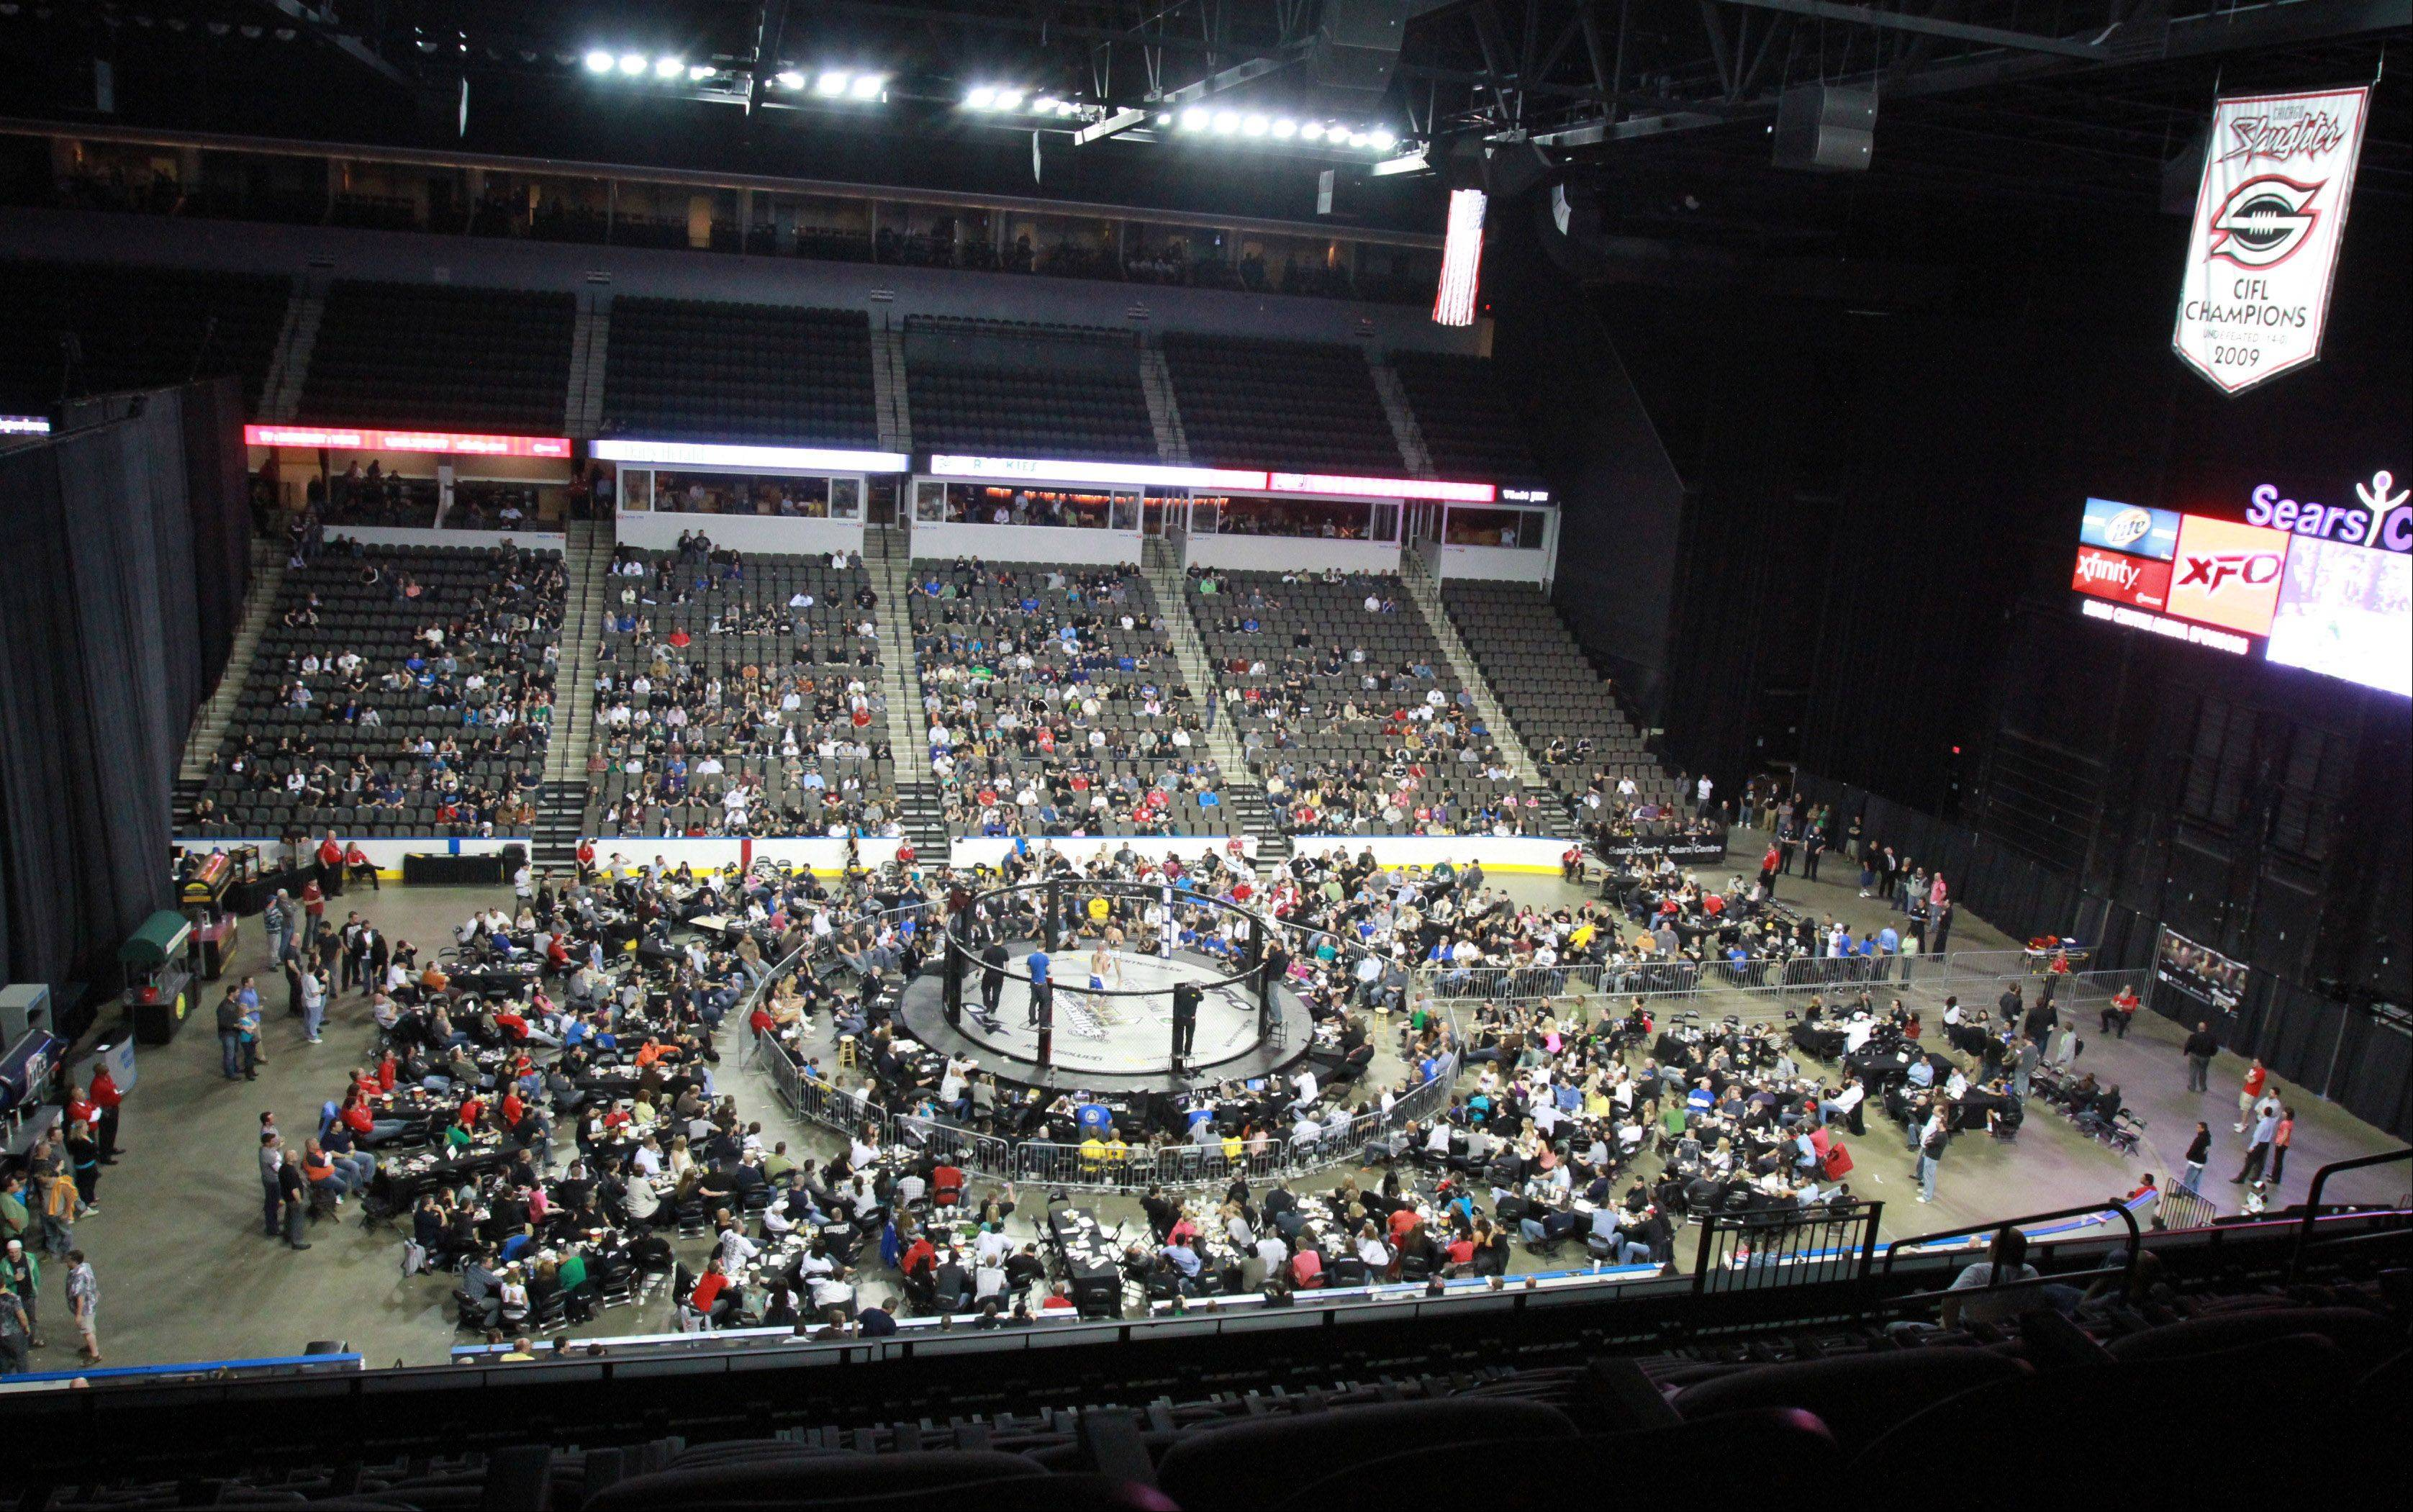 The Sears Centre crowd is entertained by a mixed martial arts cage match, but in a matter of hours the crowds will be gone and the arena floor will be transformed into a football field.